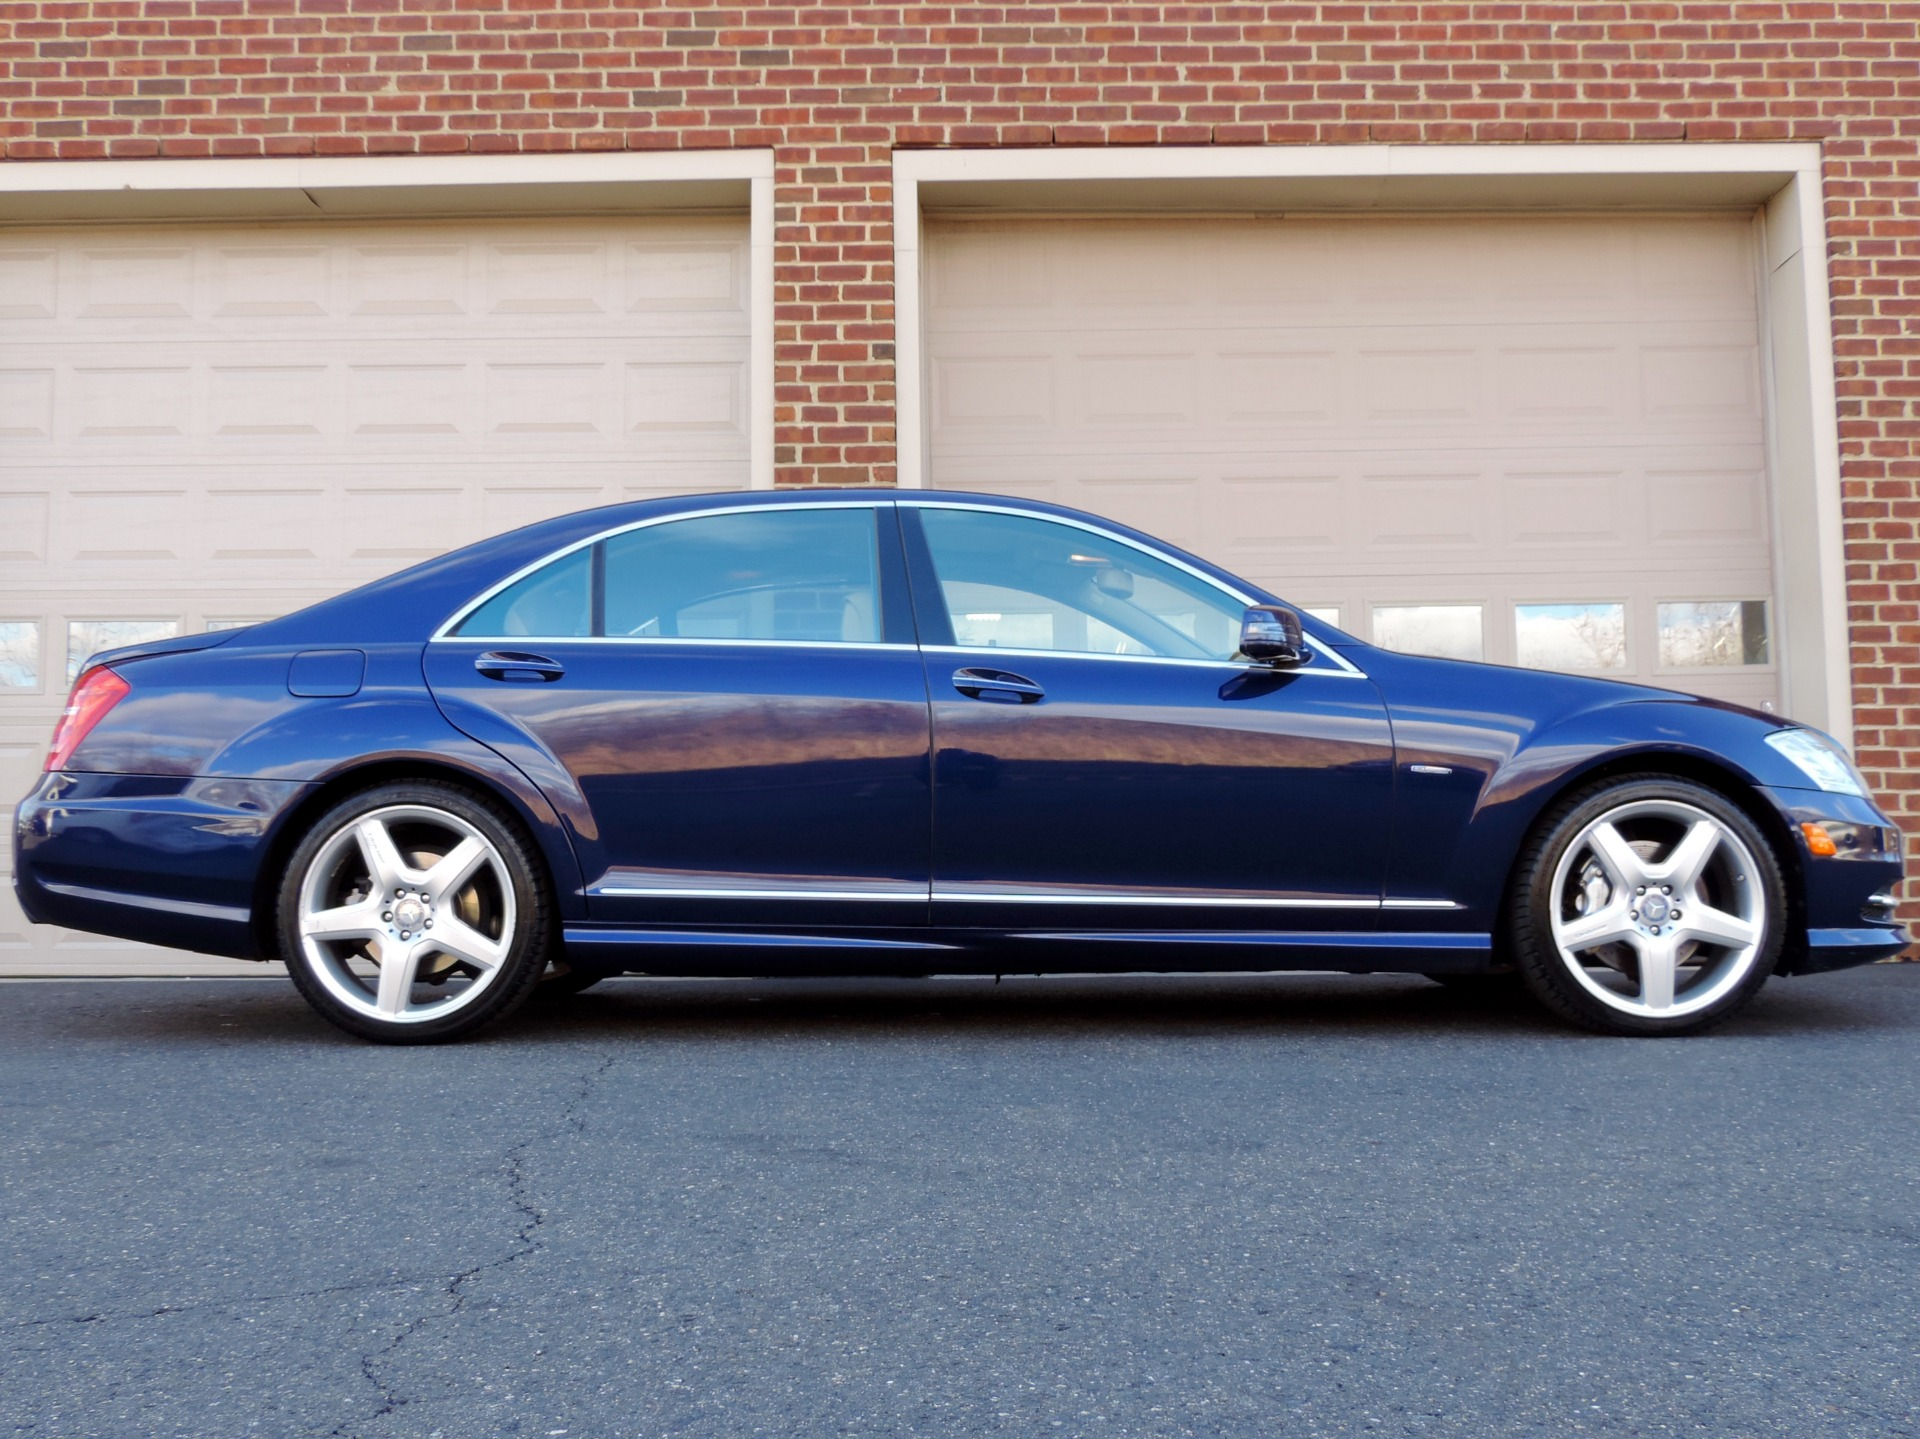 2012 mercedes benz s class s 550 4matic stock 452560 for for Mercedes benz s class 2012